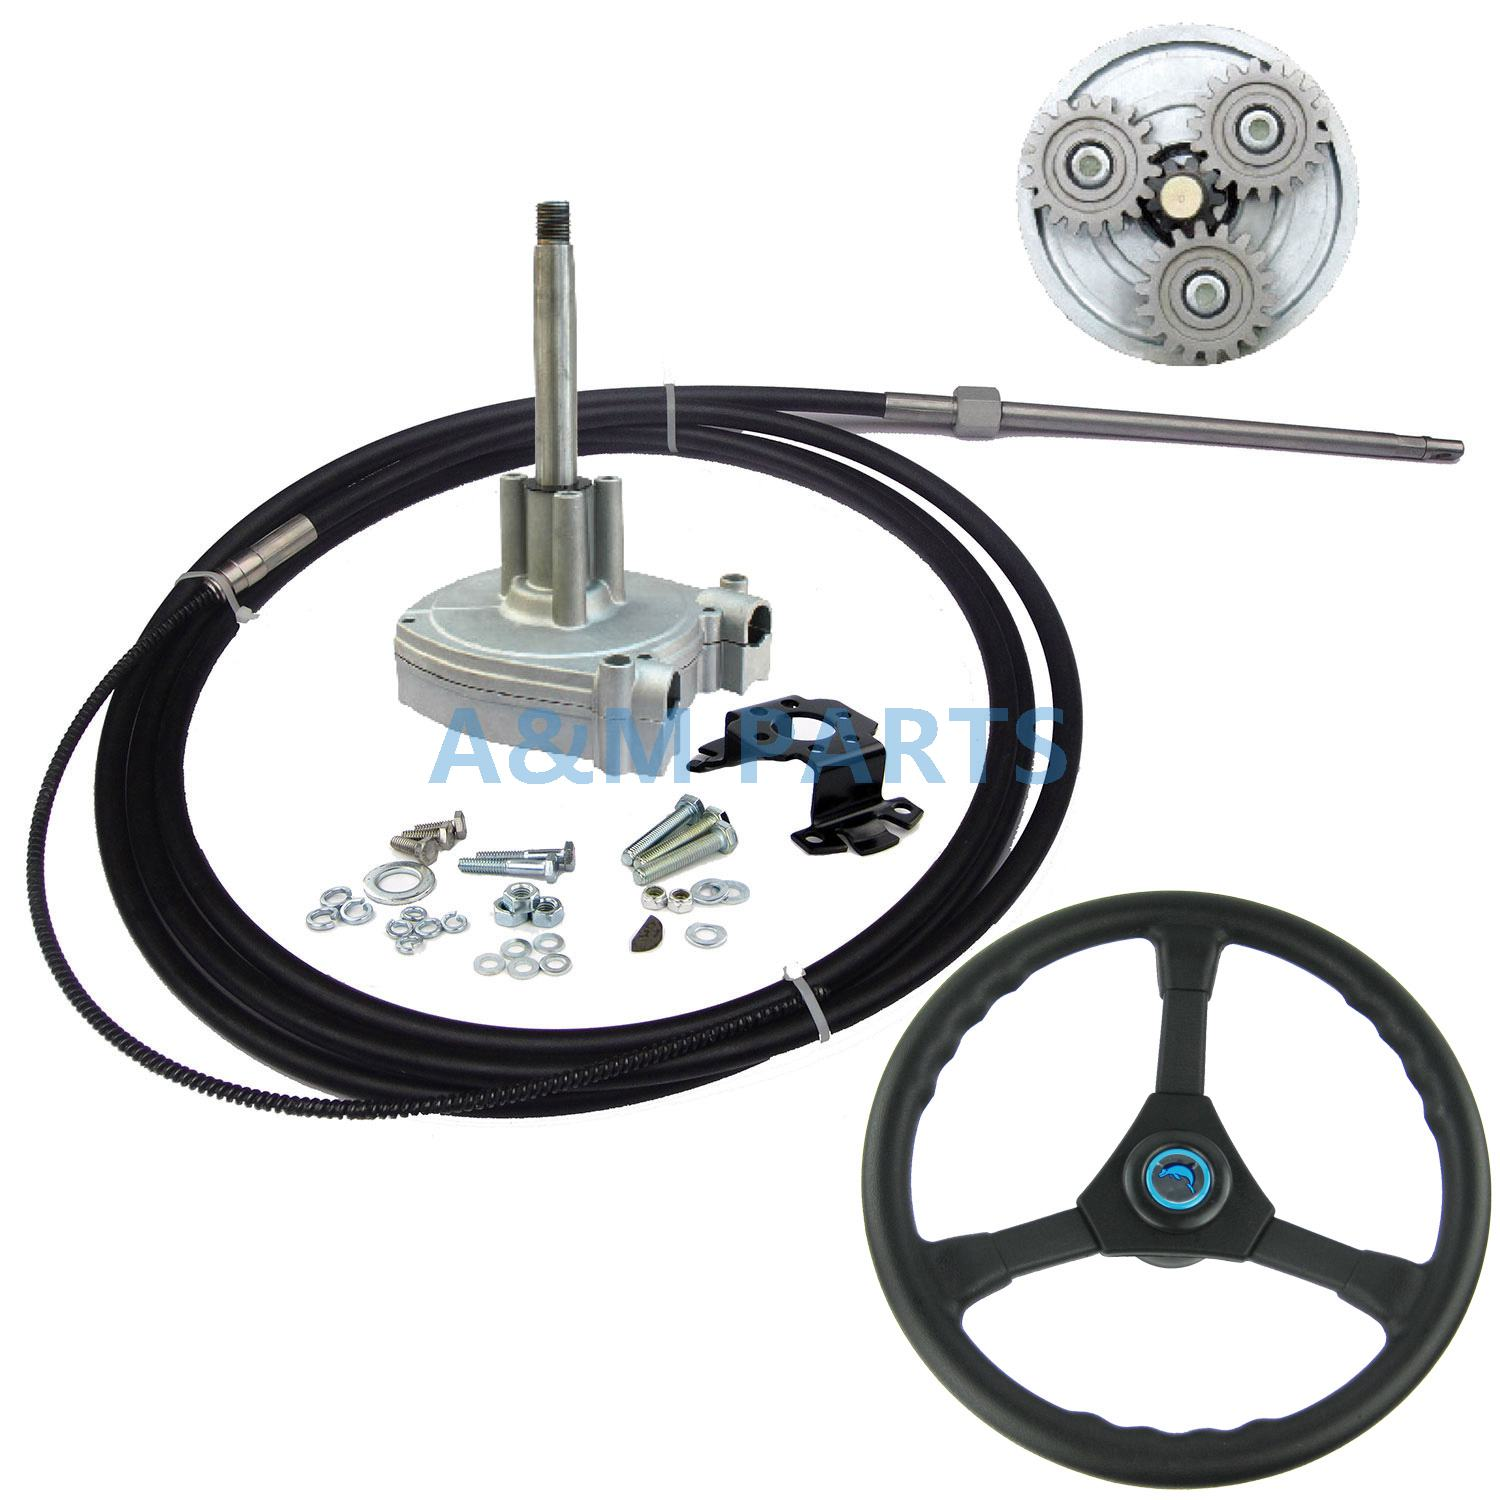 14 FT Planetary Gear Outboard Engine Boat Marine Steering System With Control Cable And Plastic Steering Wheel